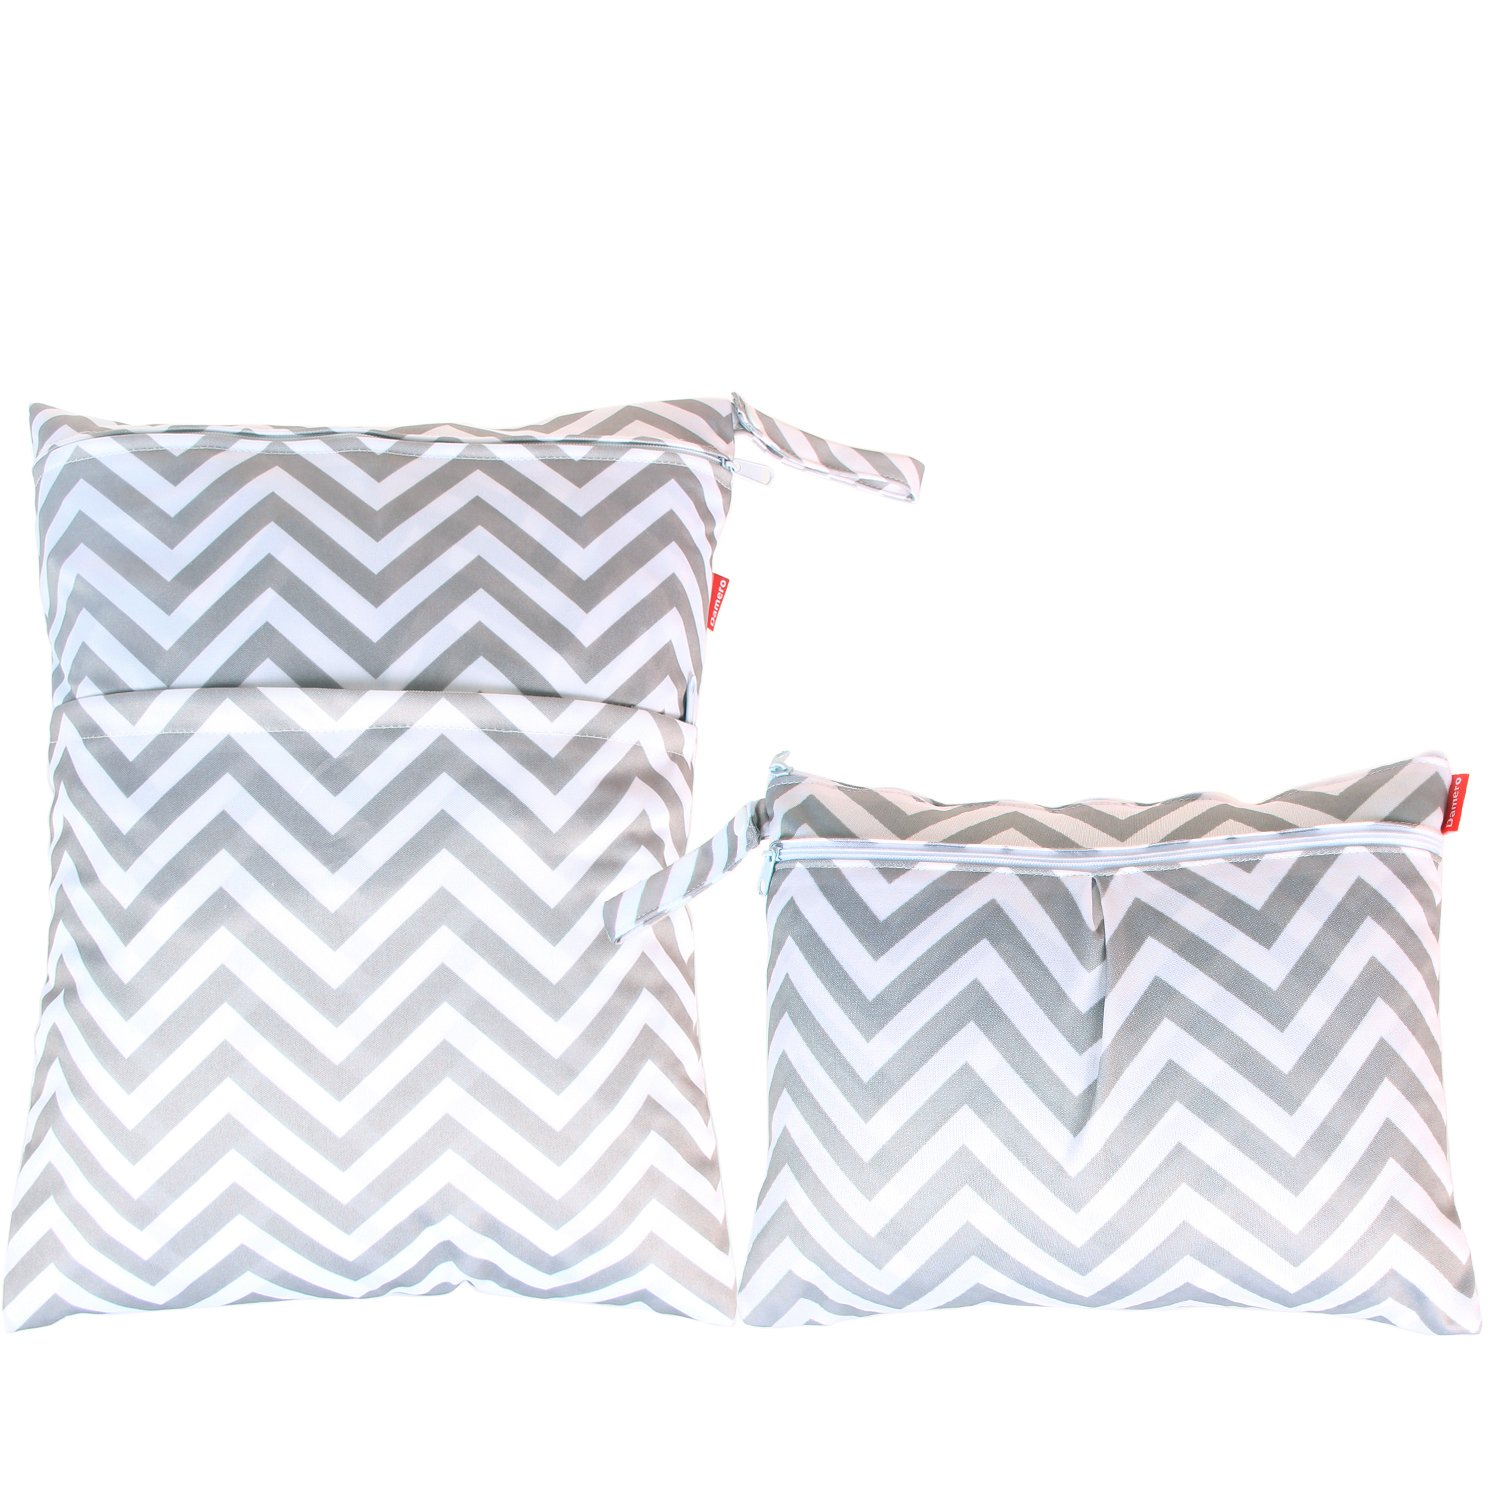 Damero 2pcs Pack Travel Baby Wet and Dry Cloth Diaper Organiser Bag, Colorful Chevron Damai